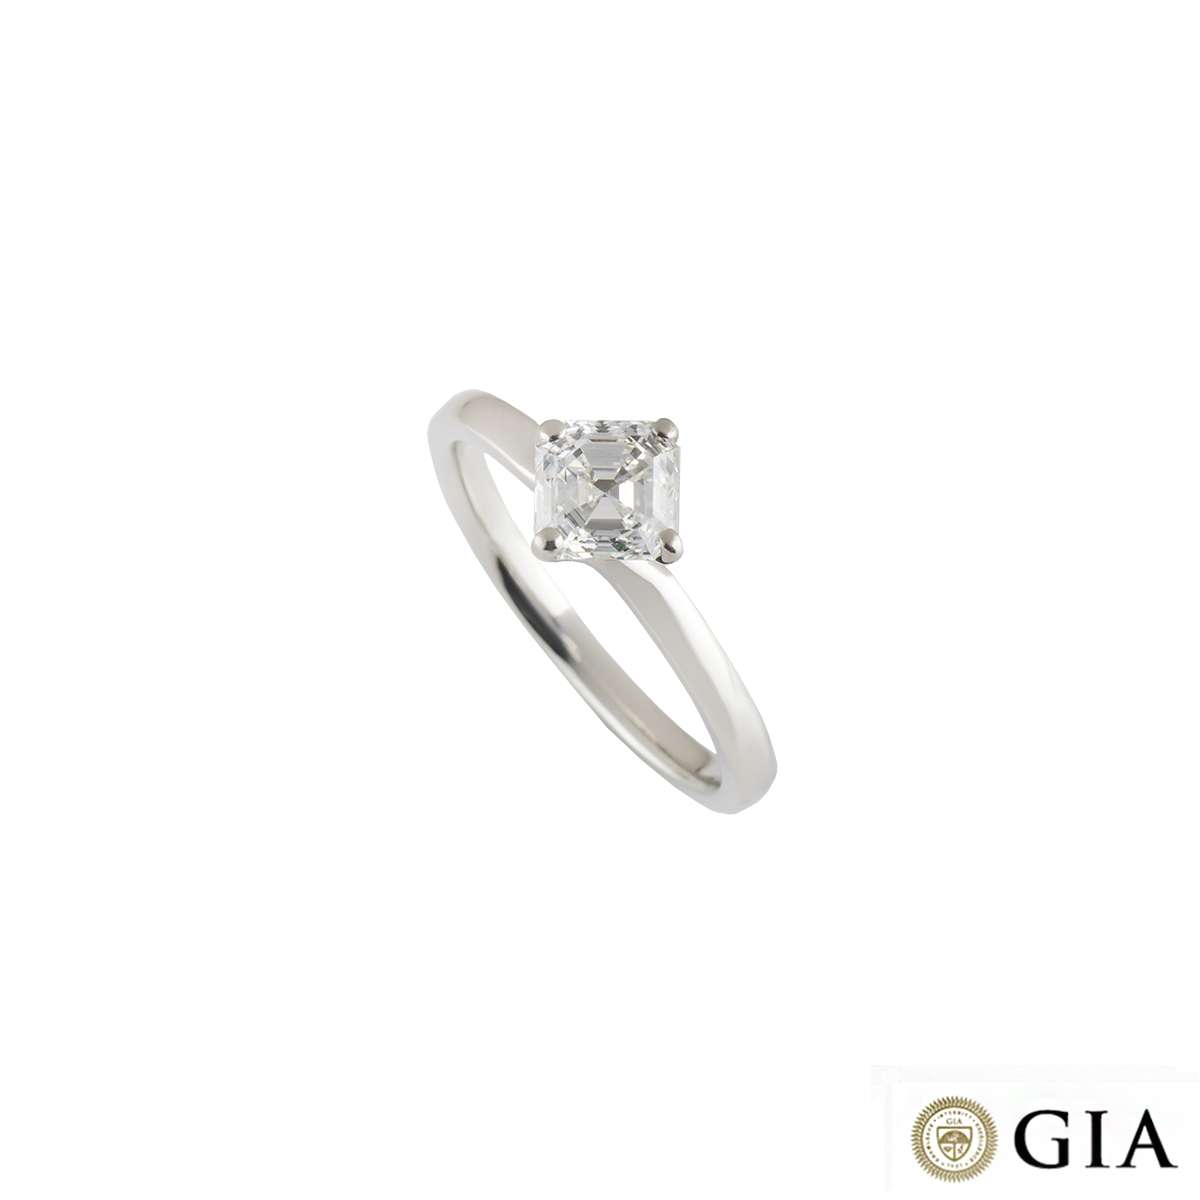 Asscher Cut Diamond Ring in Platinum 1.00ct G/VS2